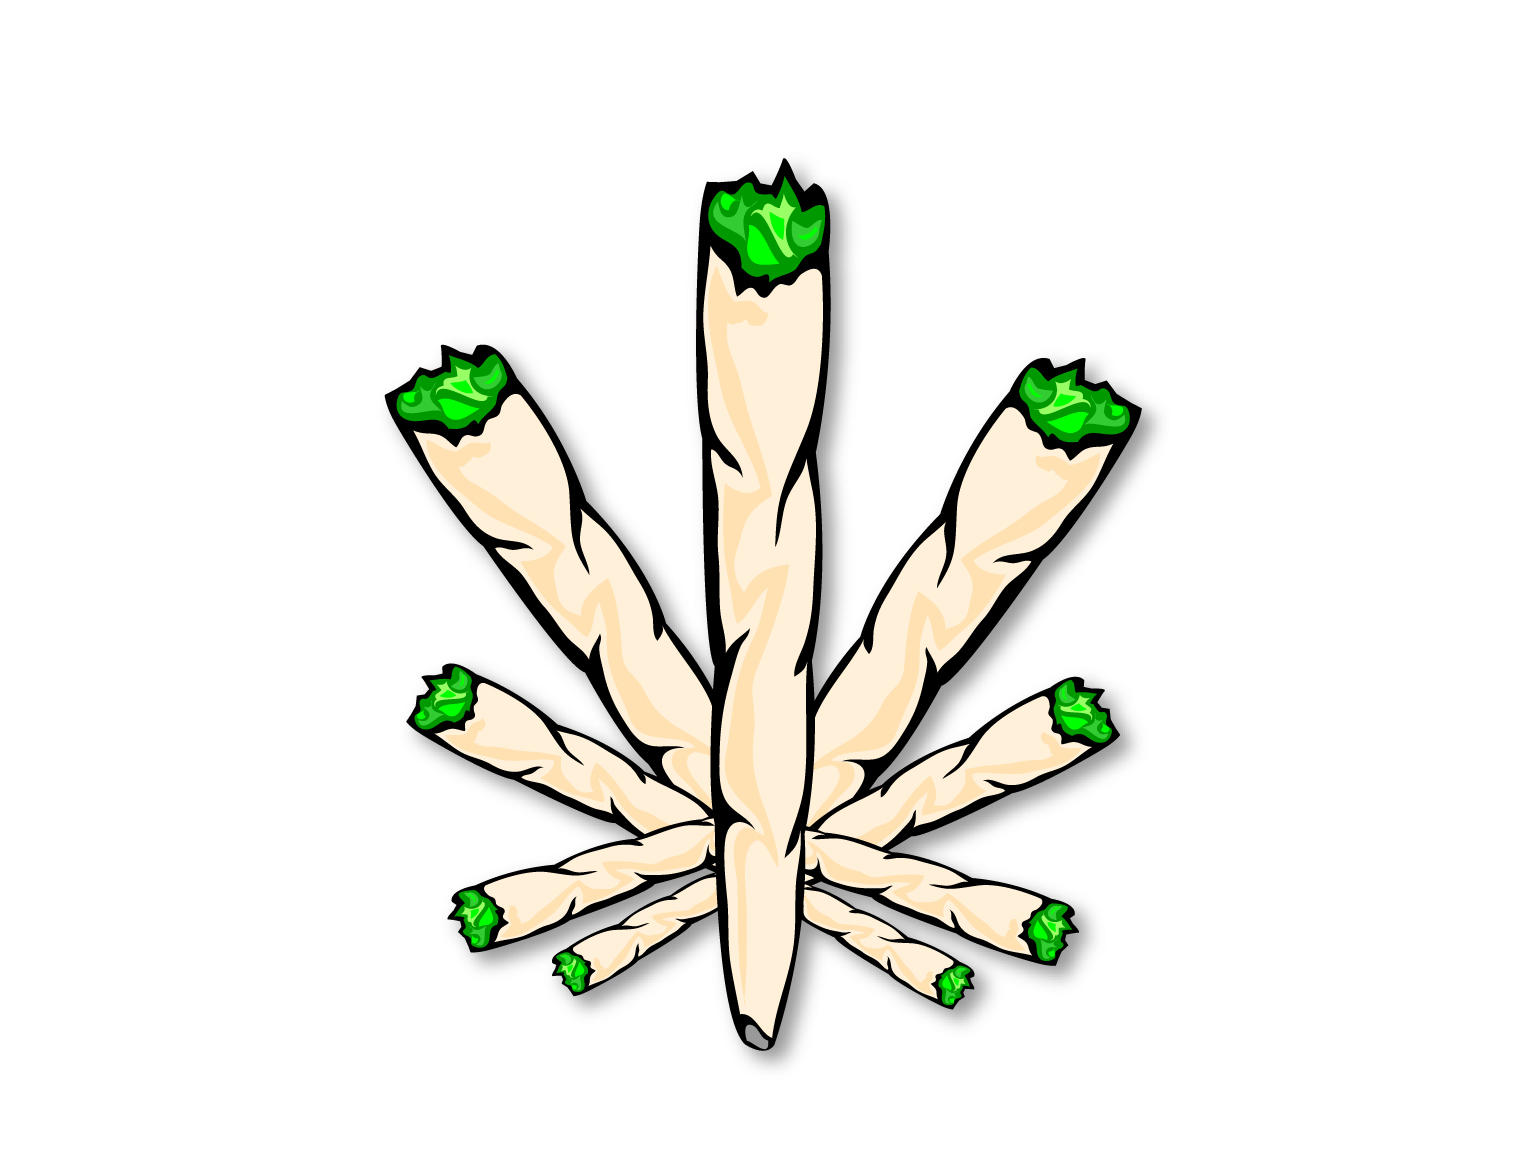 how to hold a joint of weed